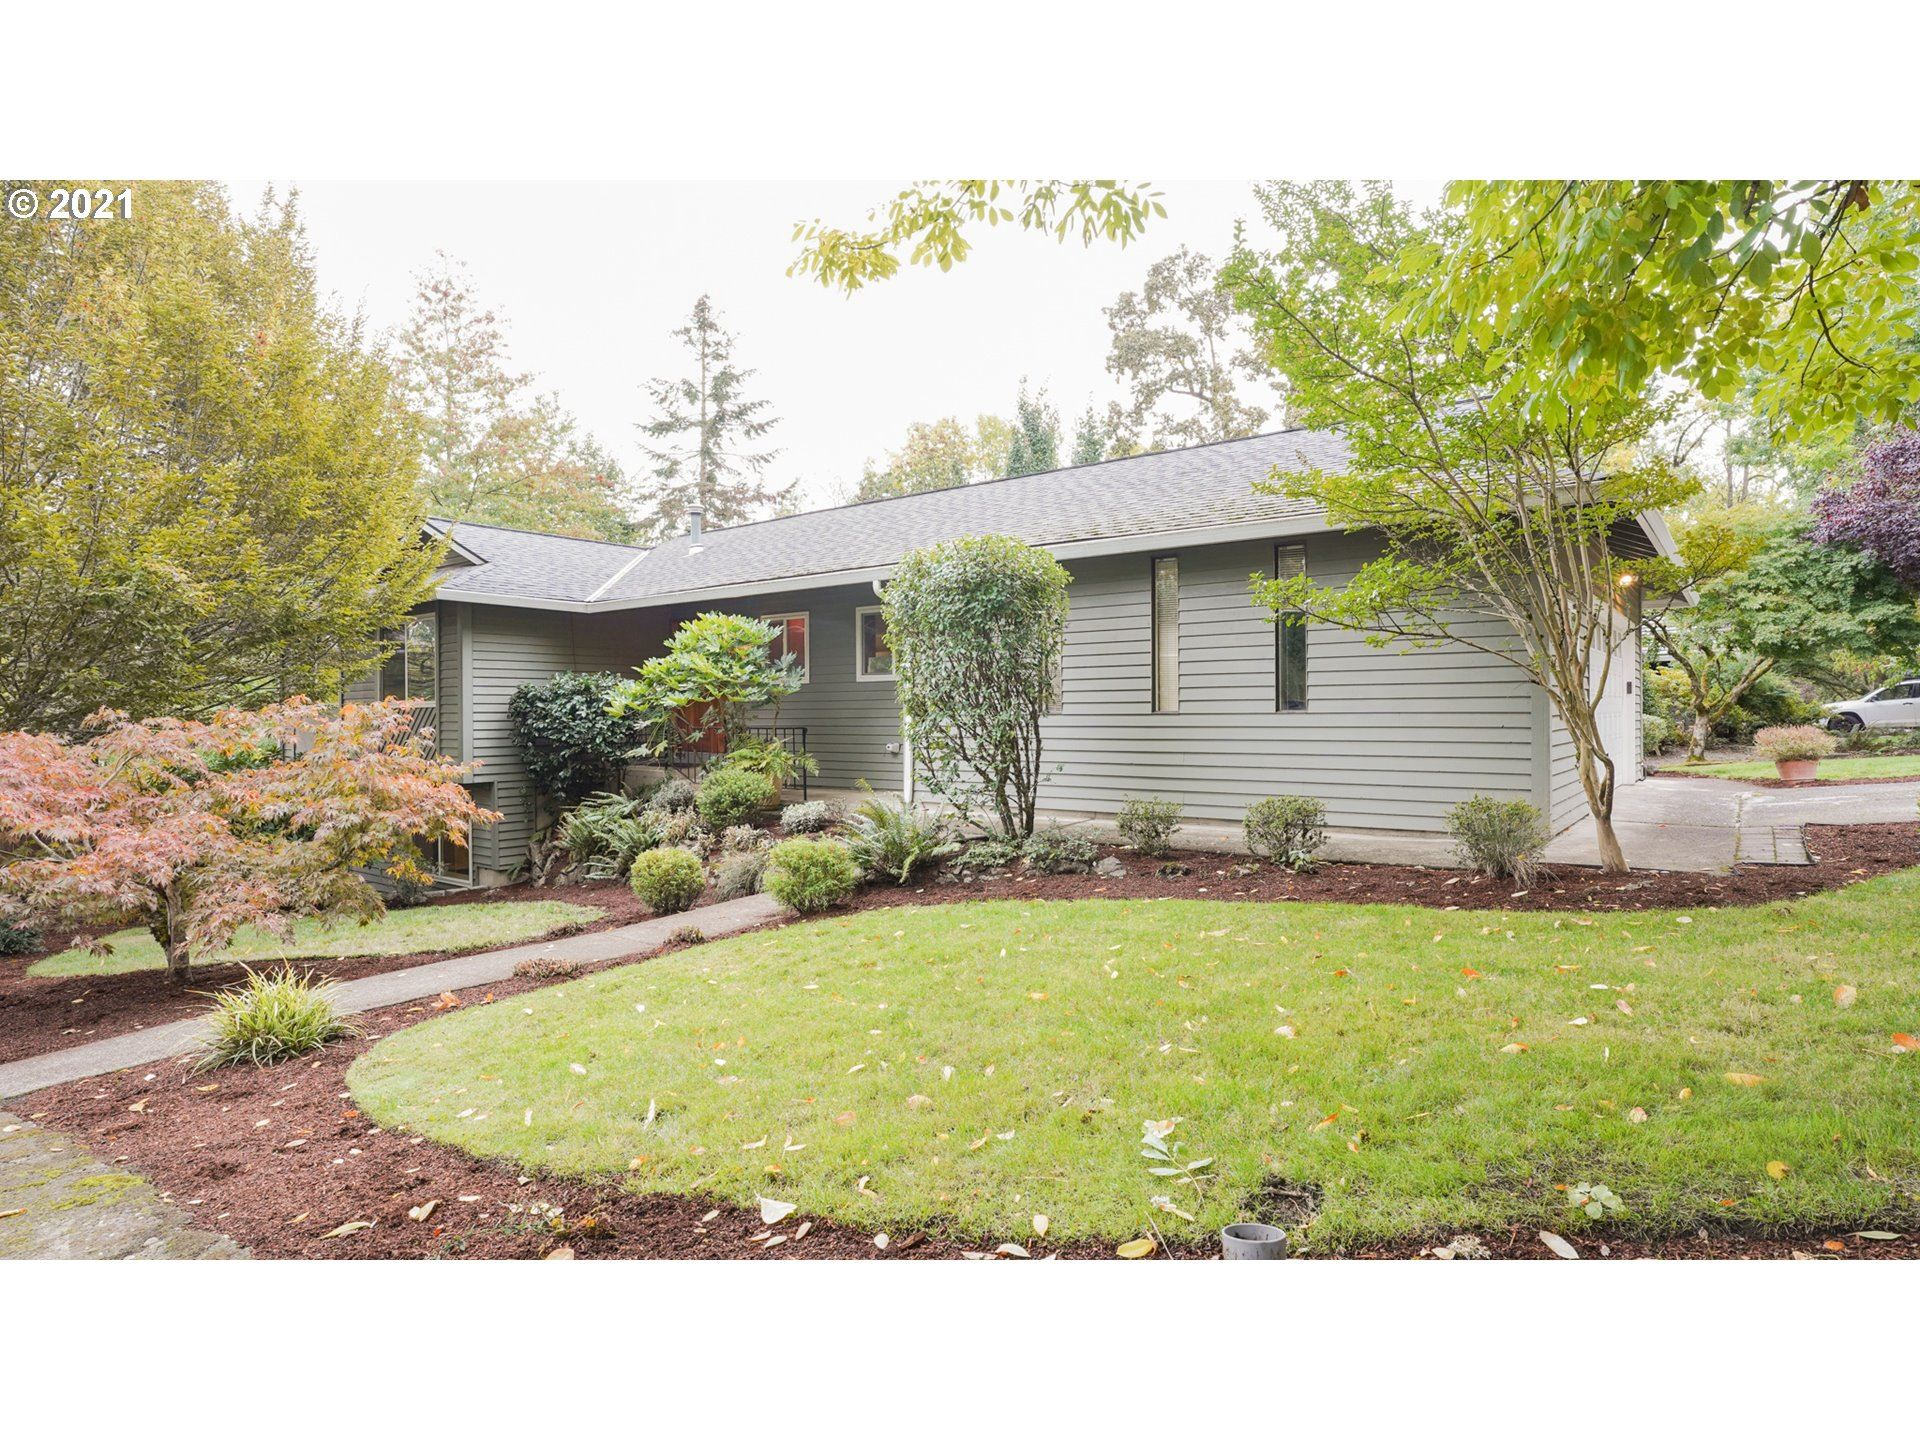 Photo of 2433 WOODHILL CT, West Linn, OR 97068 (MLS # 21182229)